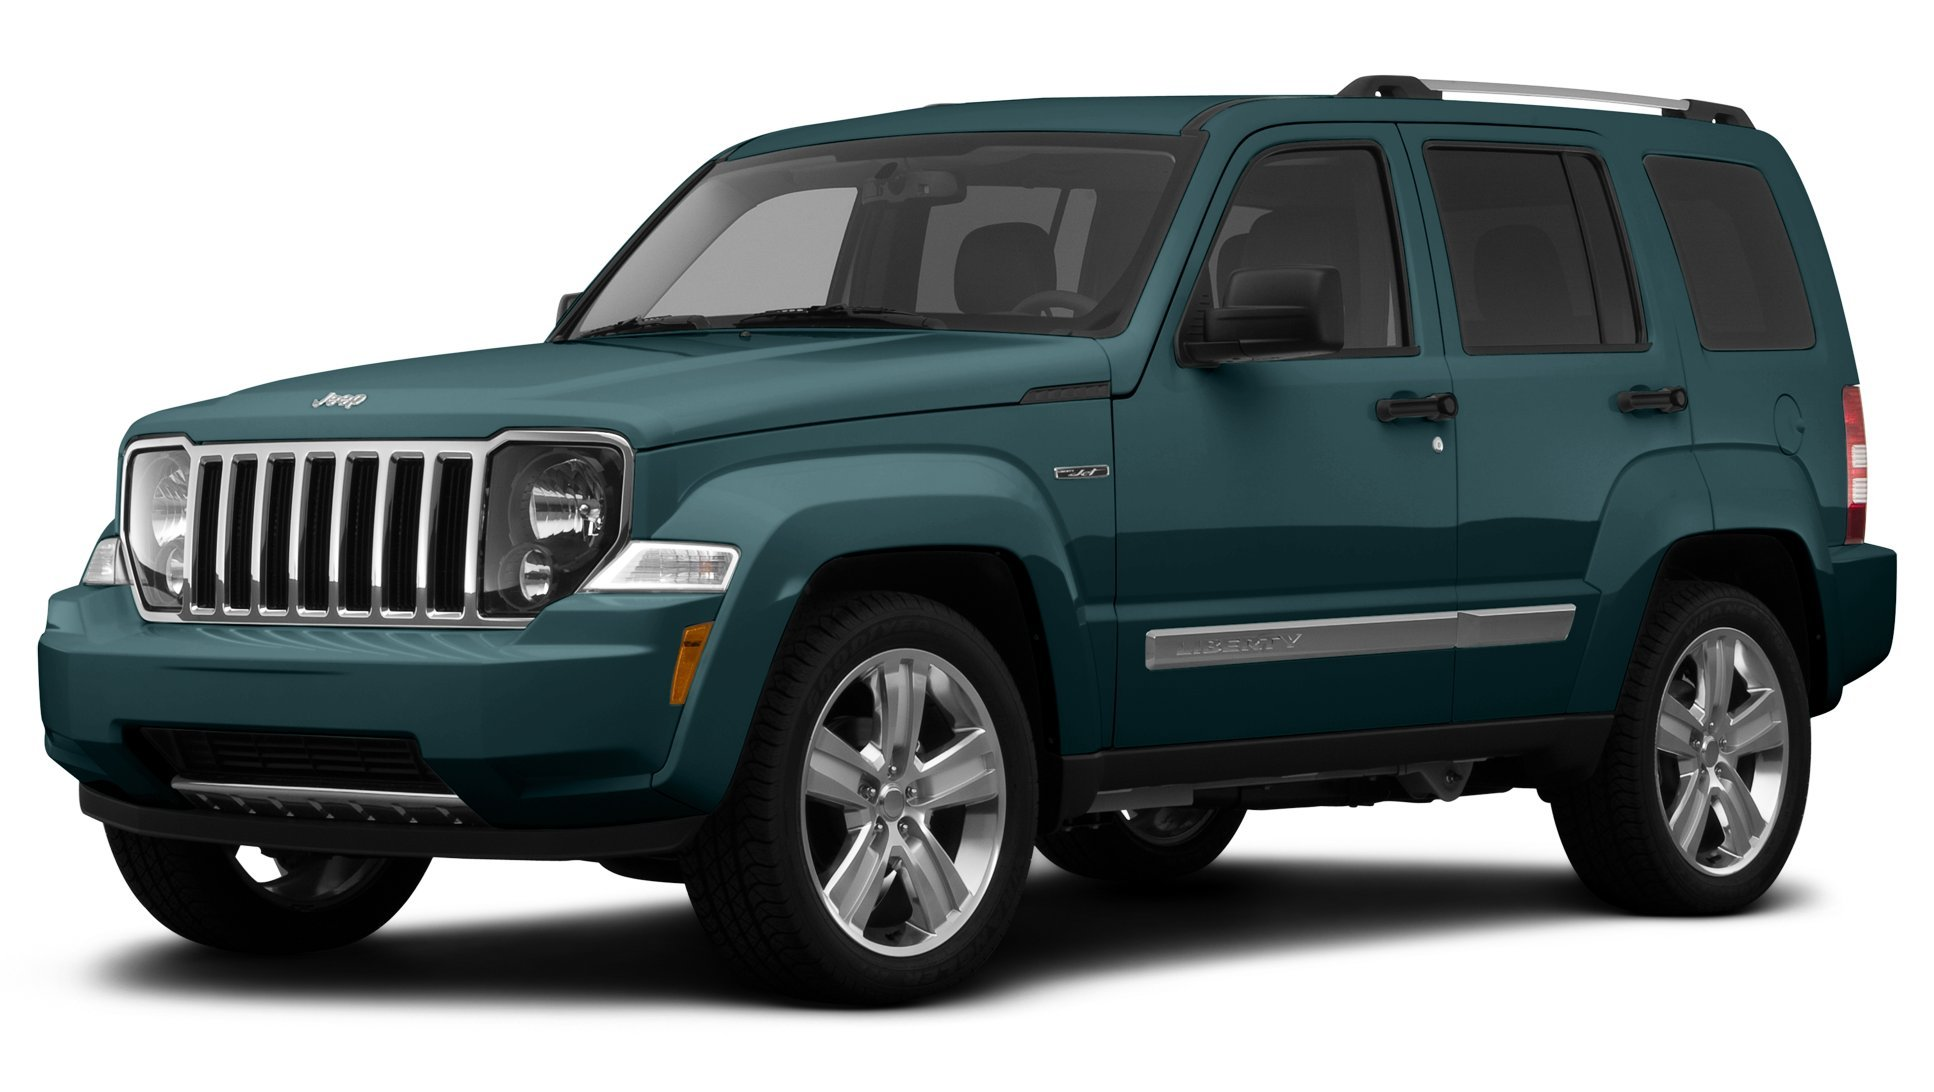 2012 jeep liberty reviews images and specs vehicles. Black Bedroom Furniture Sets. Home Design Ideas